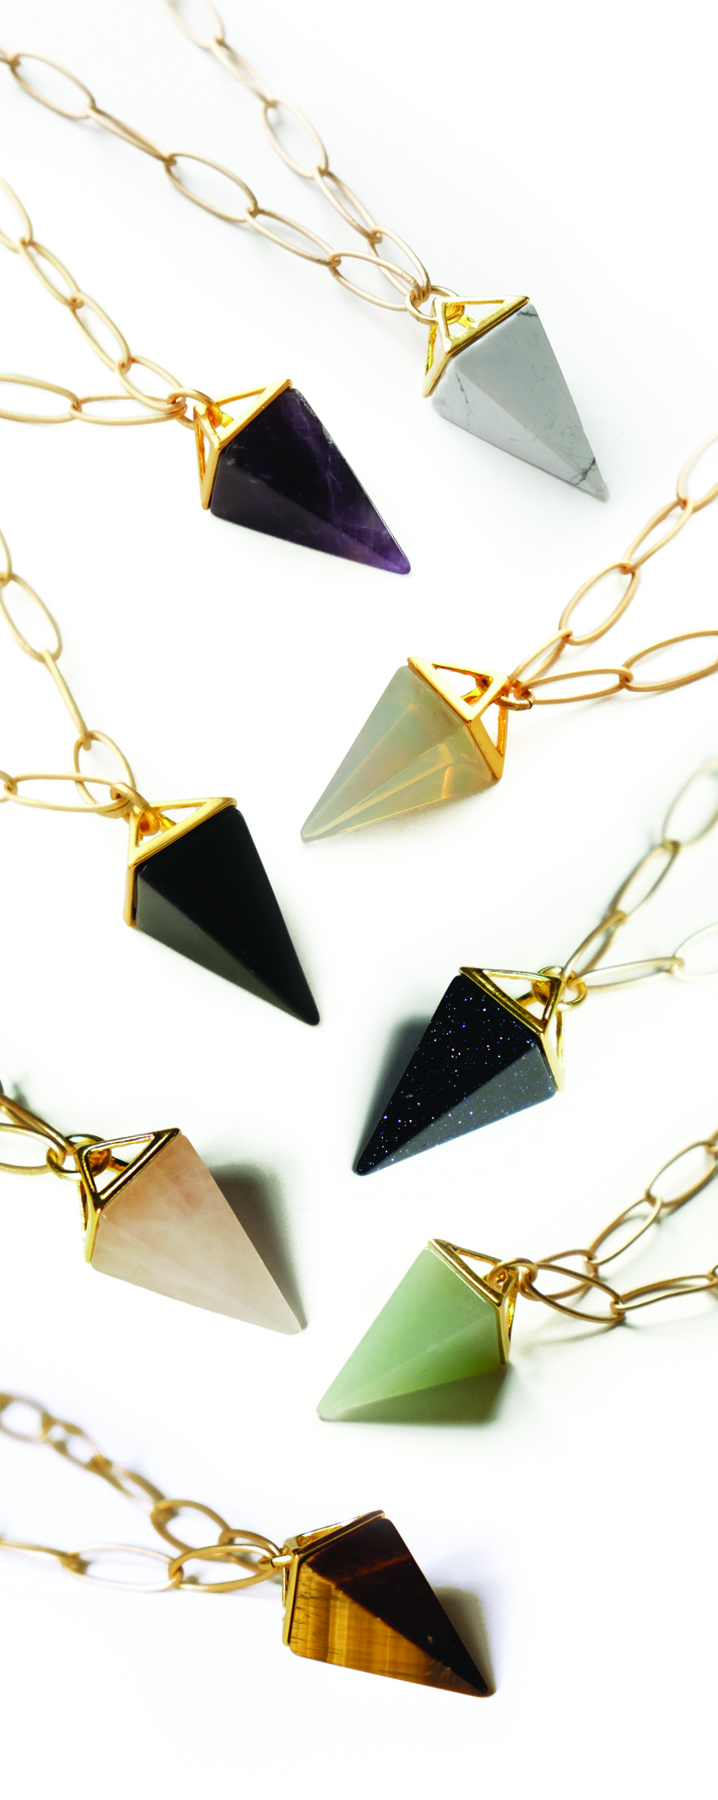 Stone Pyramid Necklace.jpg